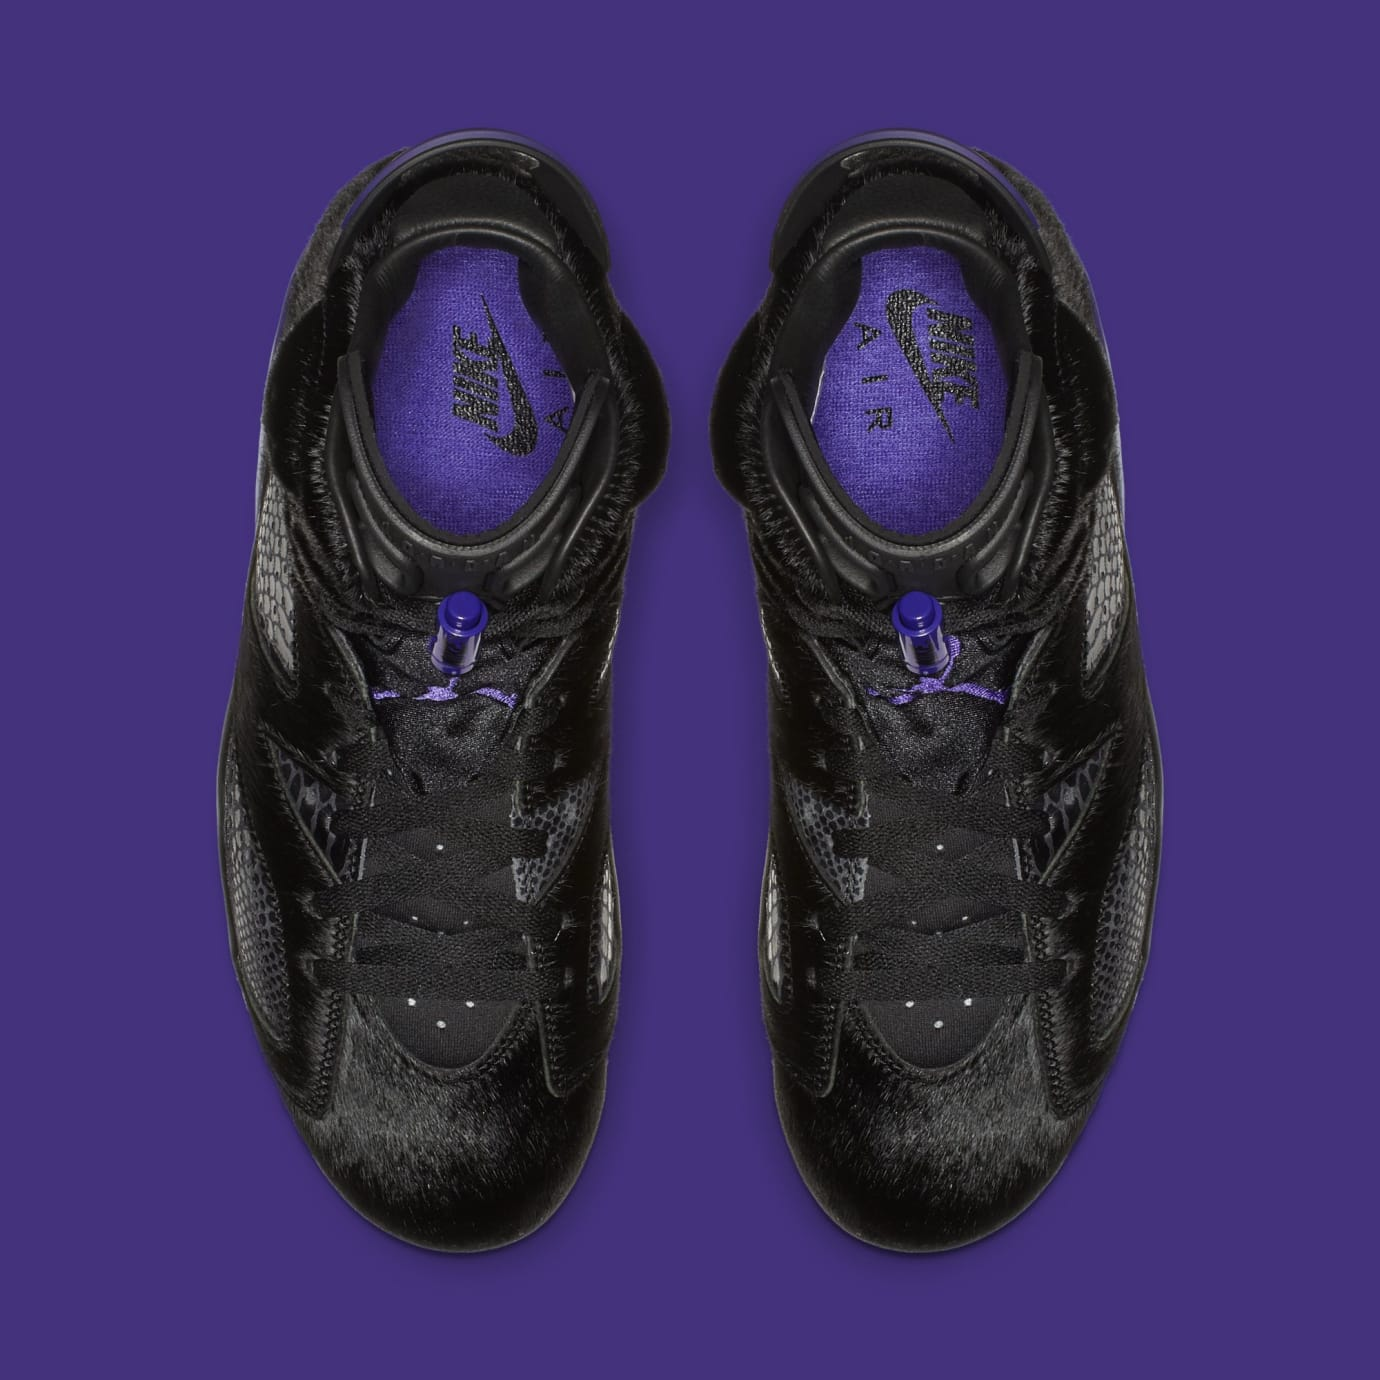 Social Status x Air Jordan 6 NRG 'Black/Dark Concord' AR2257-005 (Top)